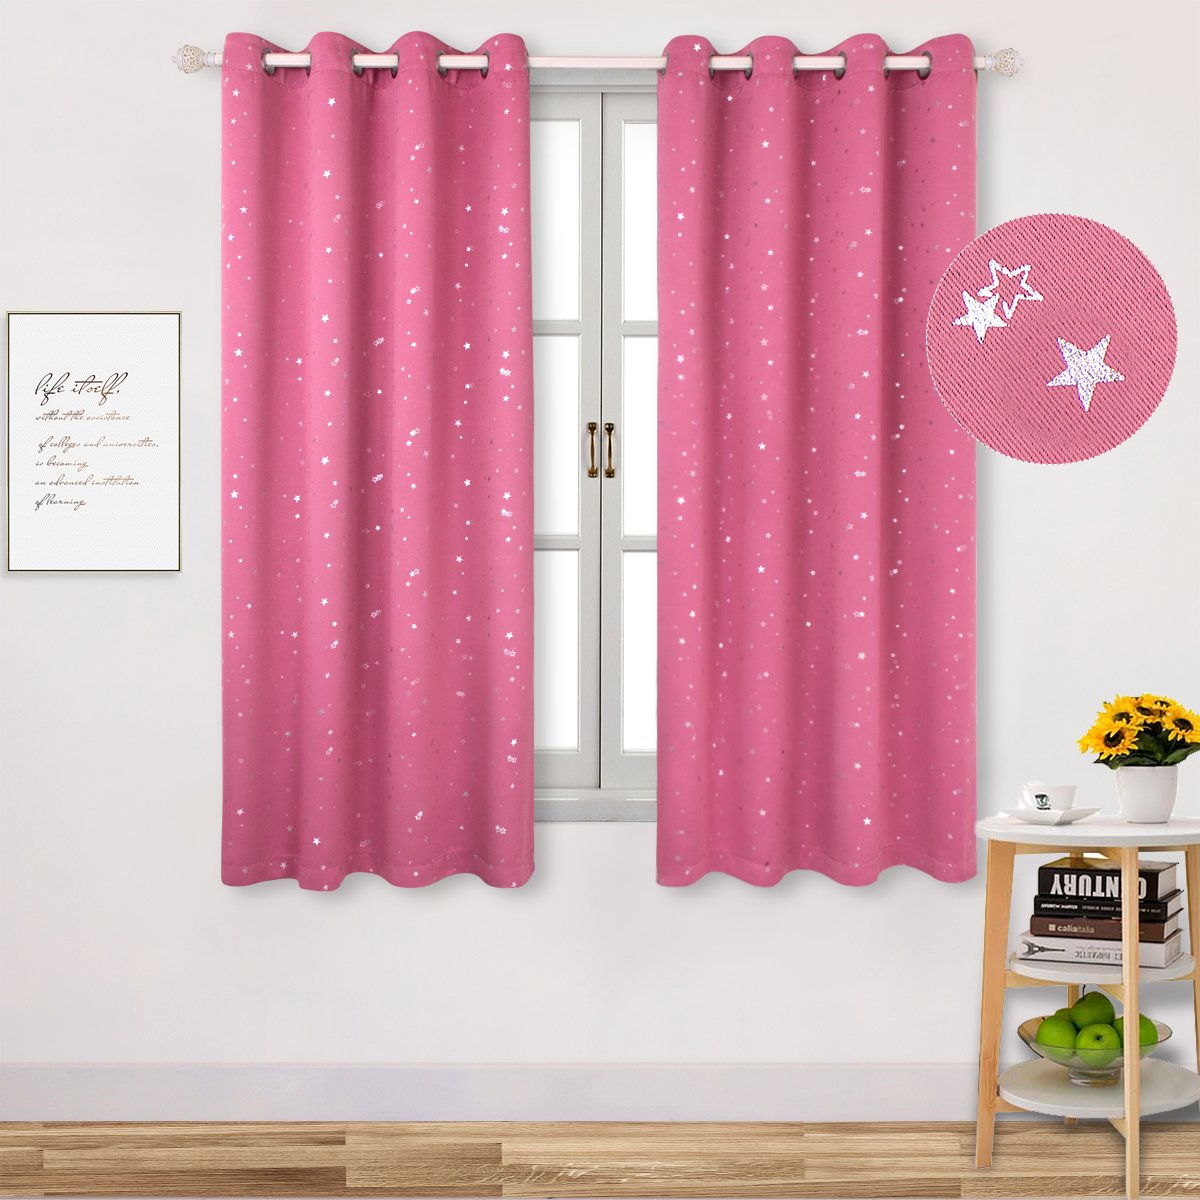 BGment Room Darkening Curtains for Kid's Room- Silver Star Foil Printed Window Drapes for Bedroom, Grommet, 2 Panels (52'' Wx63 L Each Panel,Pink)